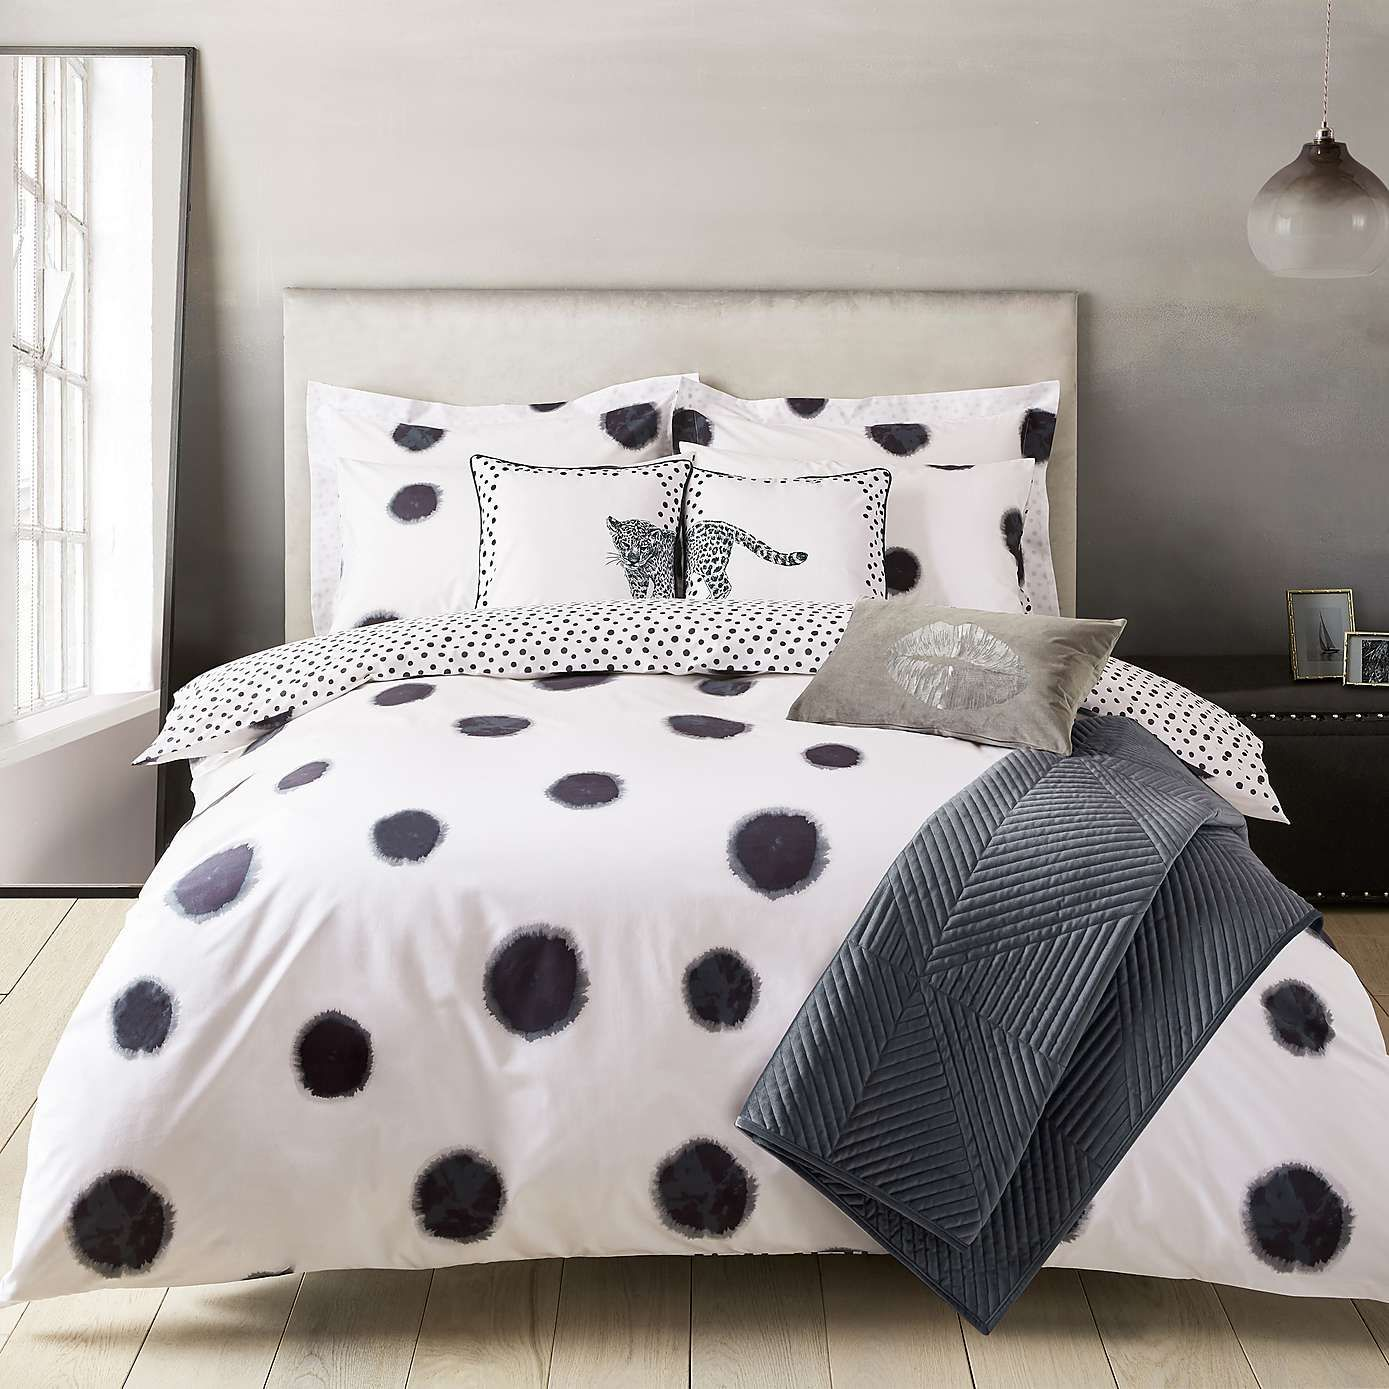 Emma Willis Klio Spotted Reversible Duvet Cover And Pillowcase Set